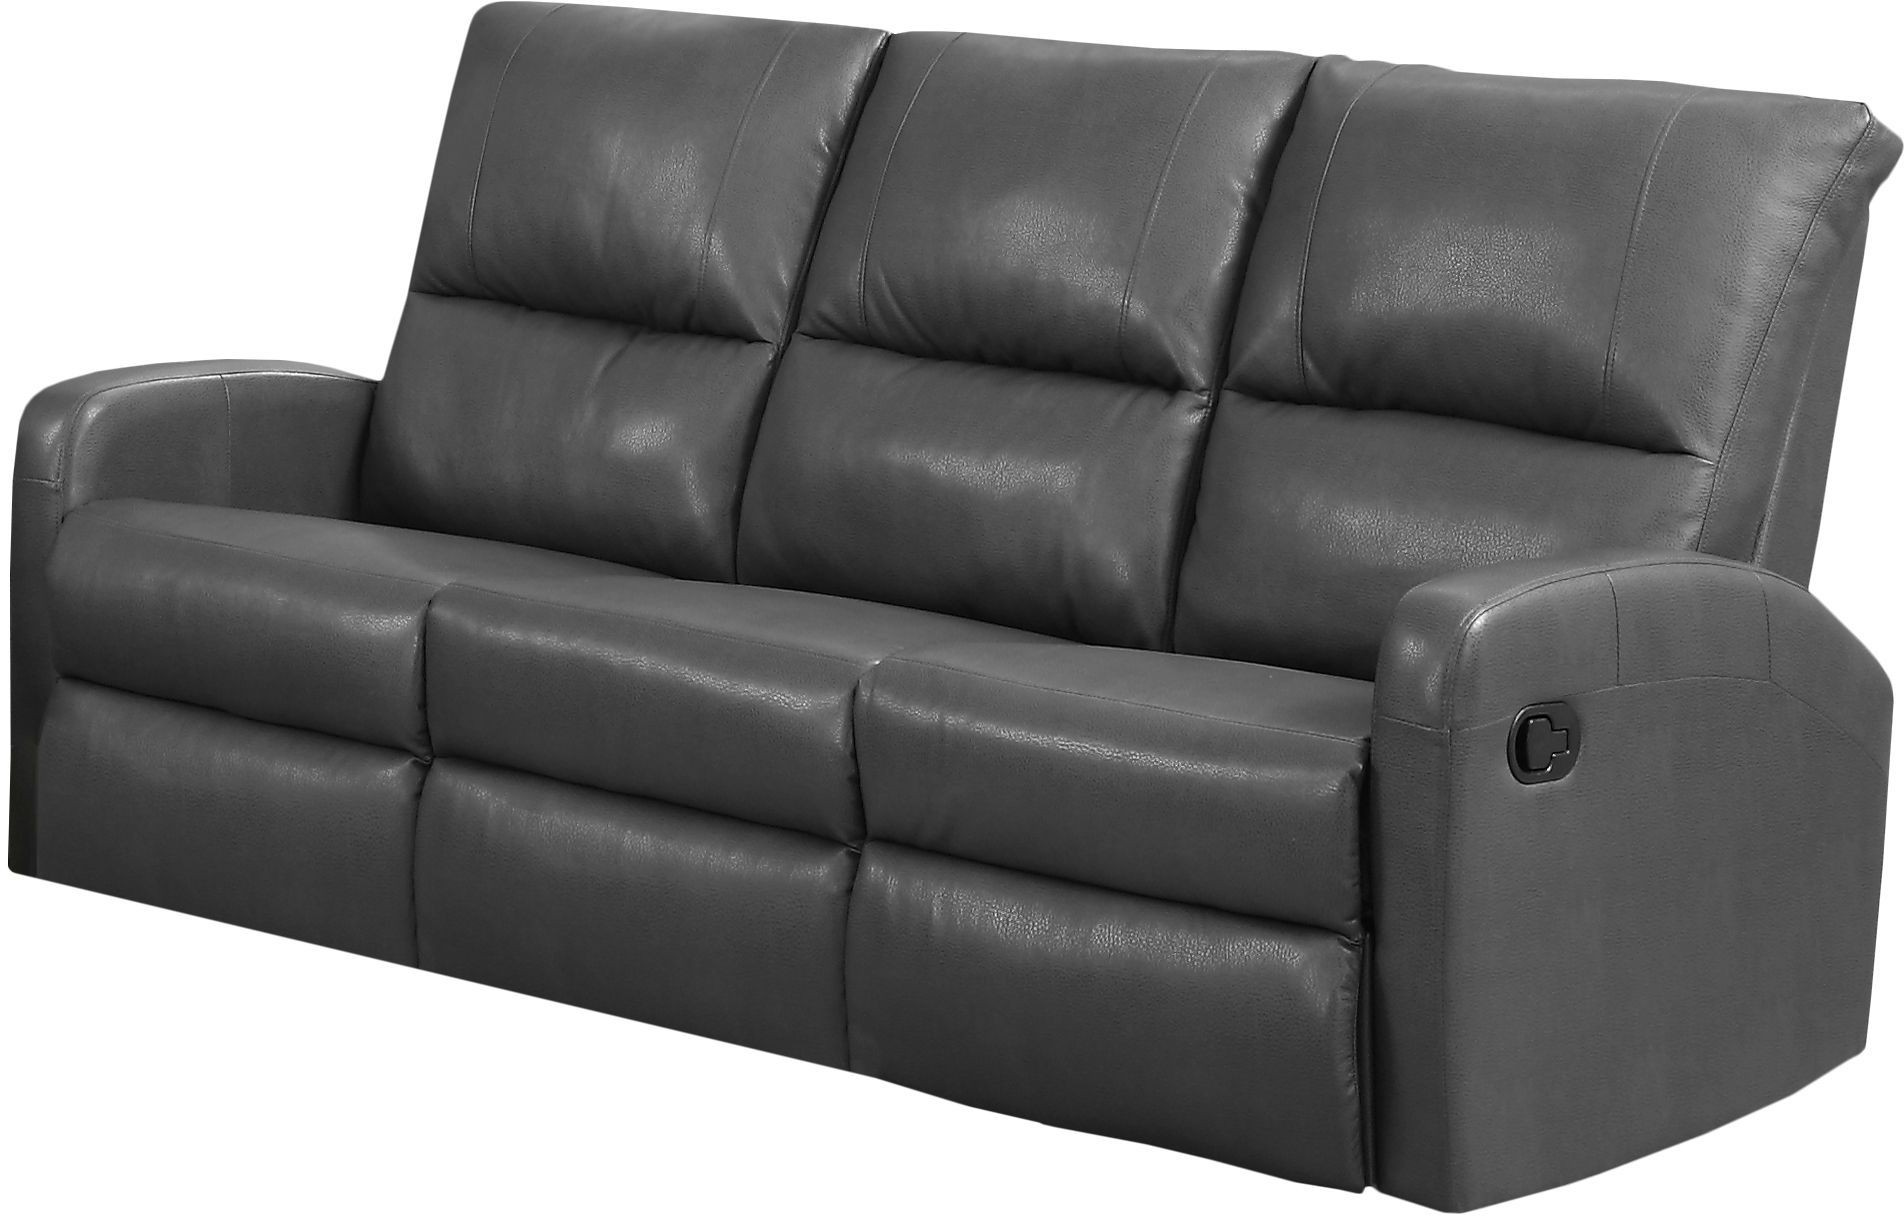 gray leather sofa recliner covers walmart calgary reclining